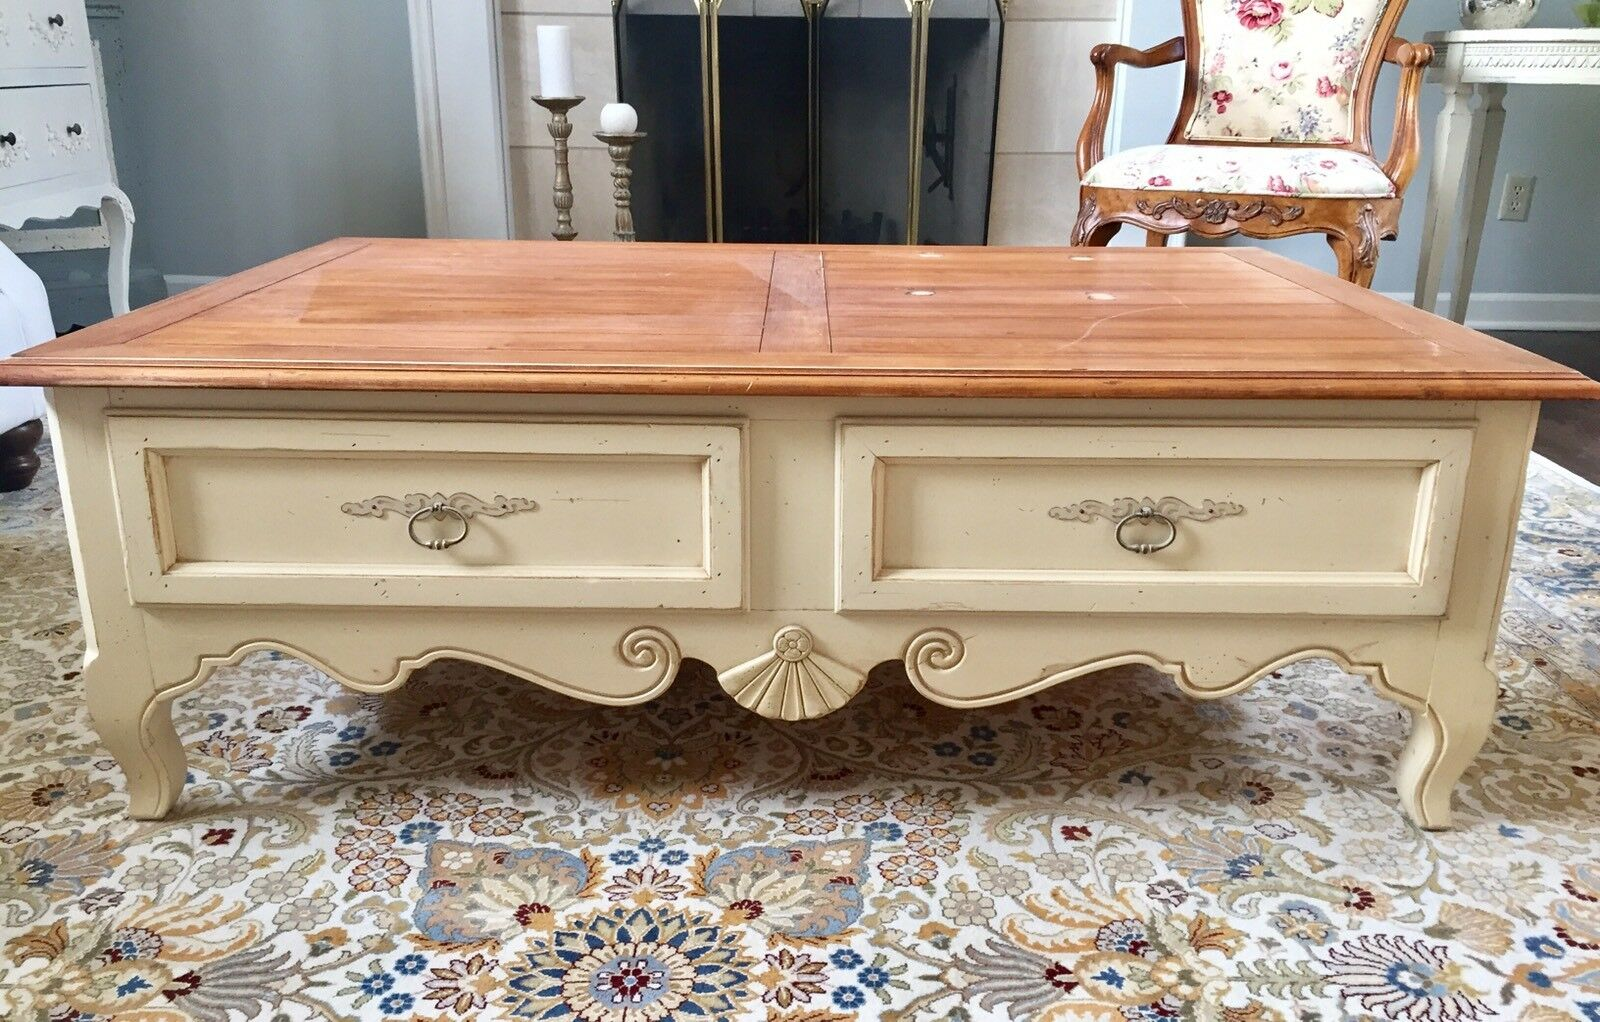 Ethan allen coffee table country french provence collection birch picture 1 of 3 geotapseo Choice Image